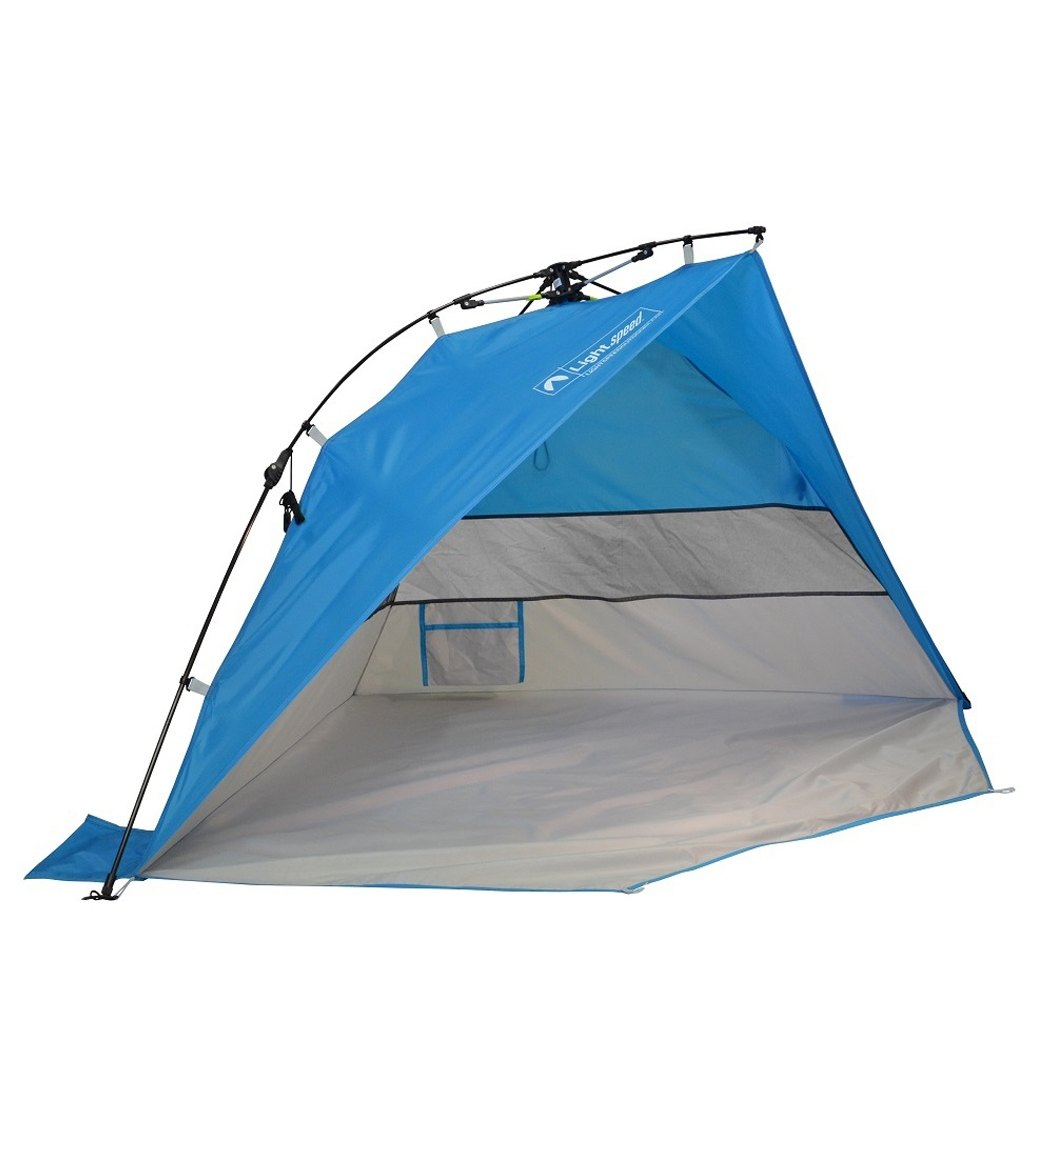 Pop Up Sun Shelter Canada Lightspeed Outdoors Mini Beach Shelter